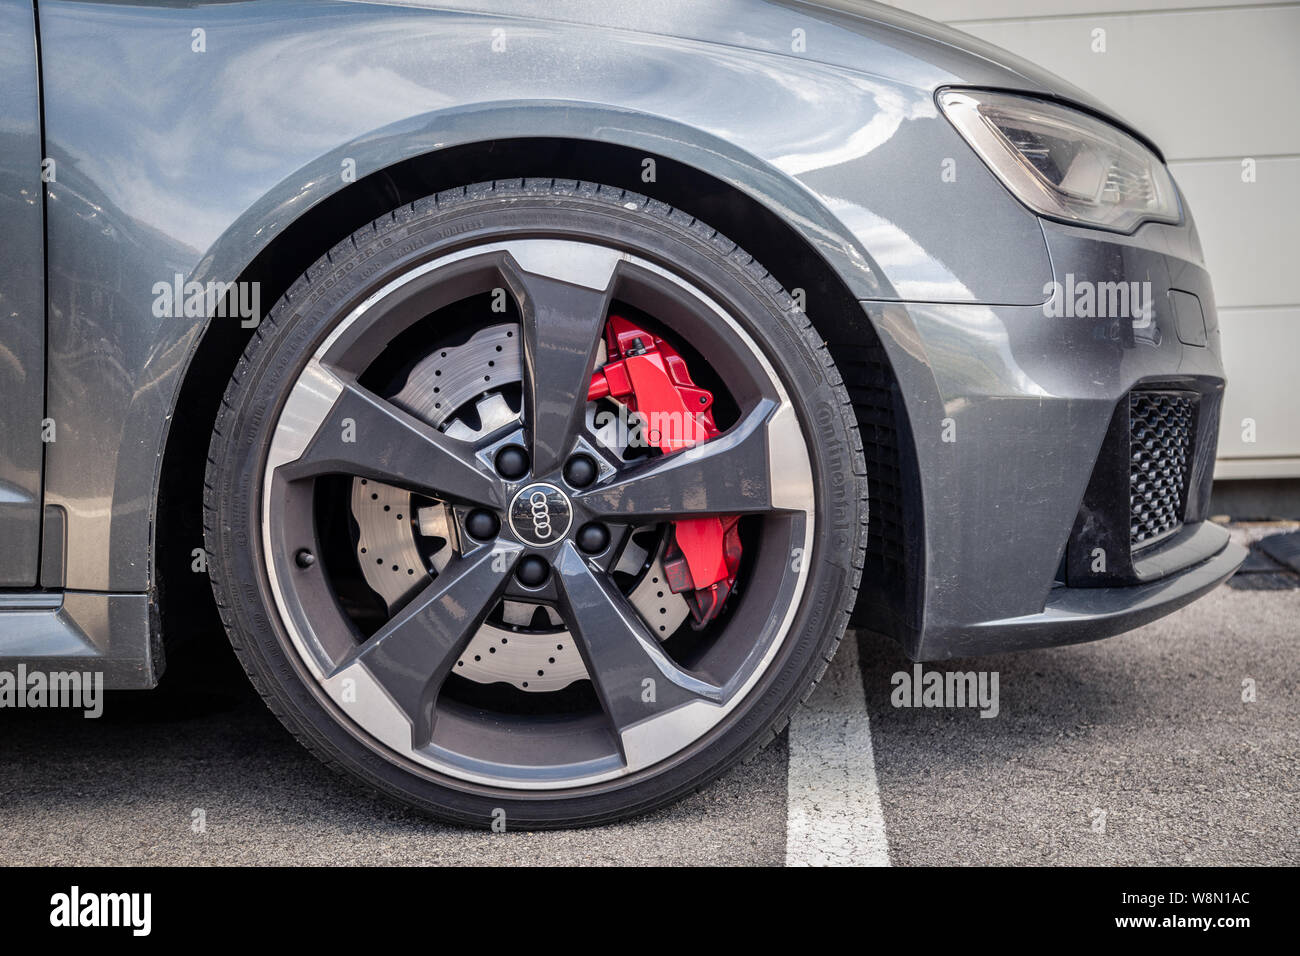 france lyon 2019 06 20 closeup wheel premium sports car dark gray hatchback audi rs 3 low profile tires brand logo on cast disk red caliper car pro stock photo alamy https www alamy com france lyon 2019 06 20 closeup wheel premium sports car dark gray hatchback audi rs 3 low profile tires brand logo on cast disk red caliper car pro image263534836 html